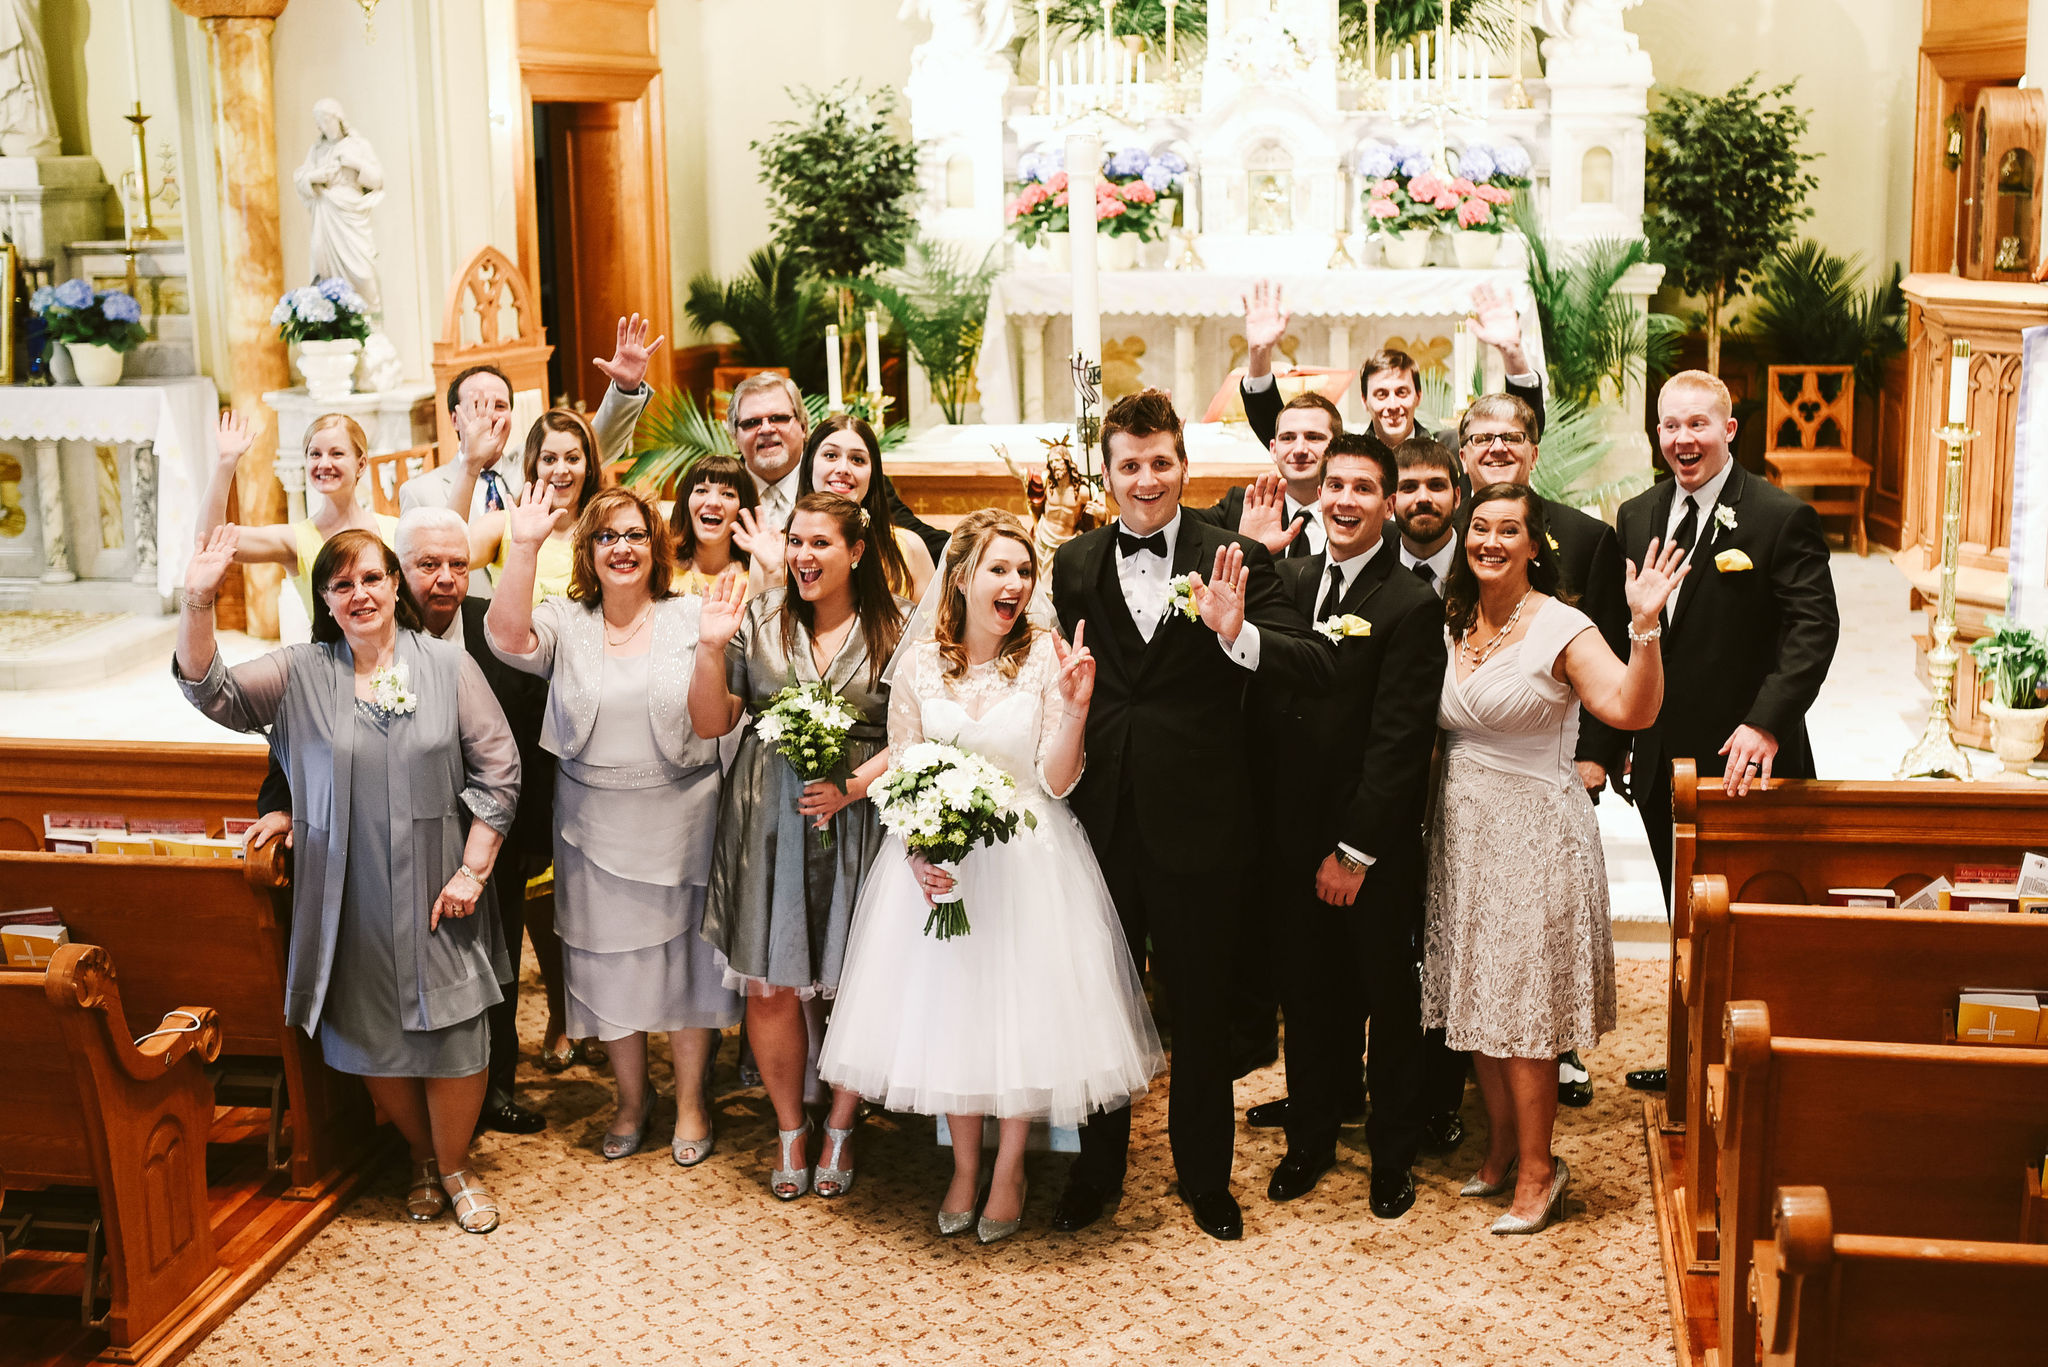 Baltimore, Church Wedding, Maryland Wedding Photographer, Vintage, Classic, 50s Style, Tea-length Wedding Dress, Group Photo, Bride and Groom Portrait with Friends and Family